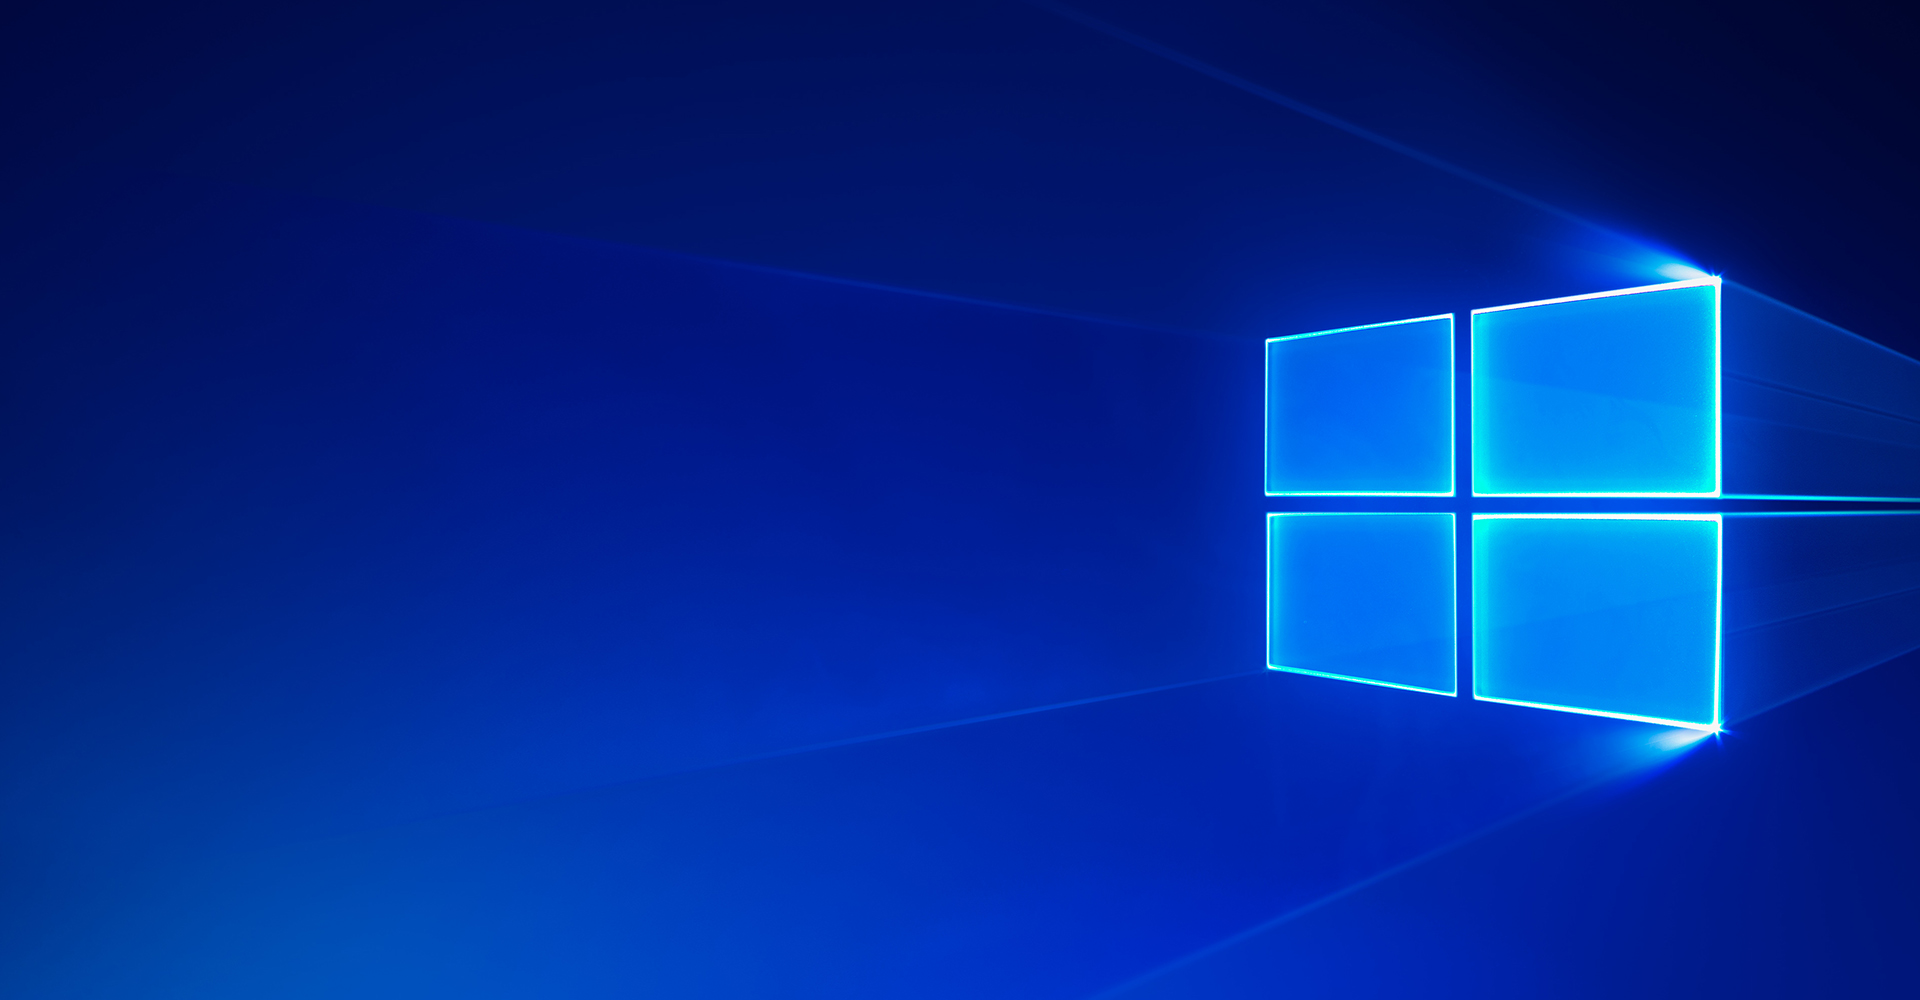 Sülearvuti Dell Vostro 5471 i5-8250U 8GB 256GB Win10Pro                             Windows 10